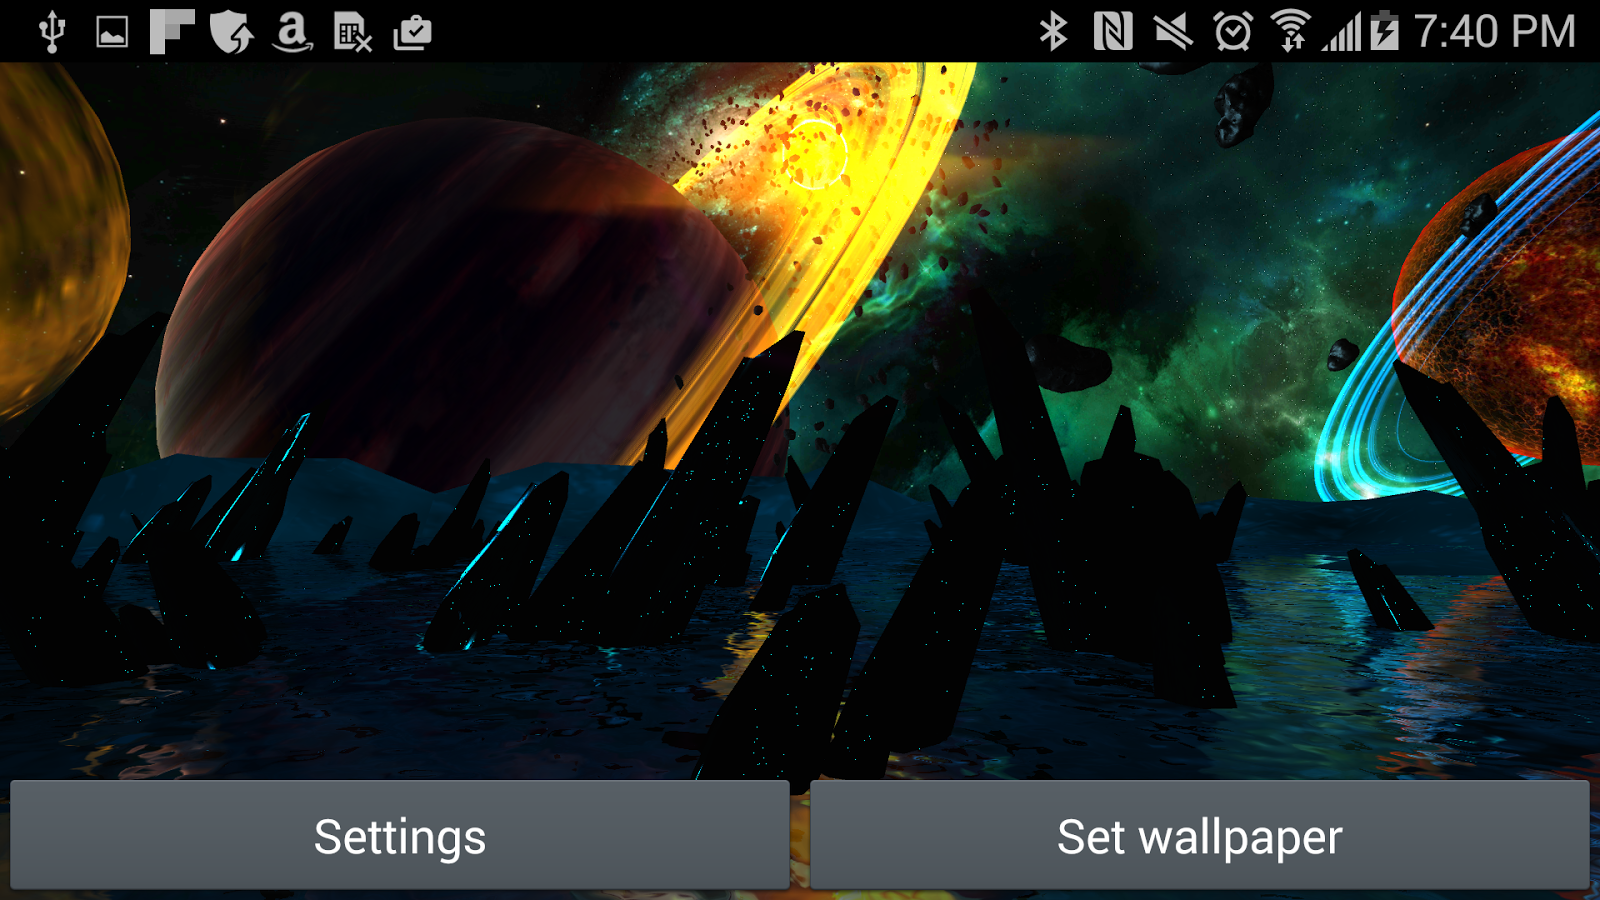 Far Galaxy 3D Live Wallpaper Screenshot 16